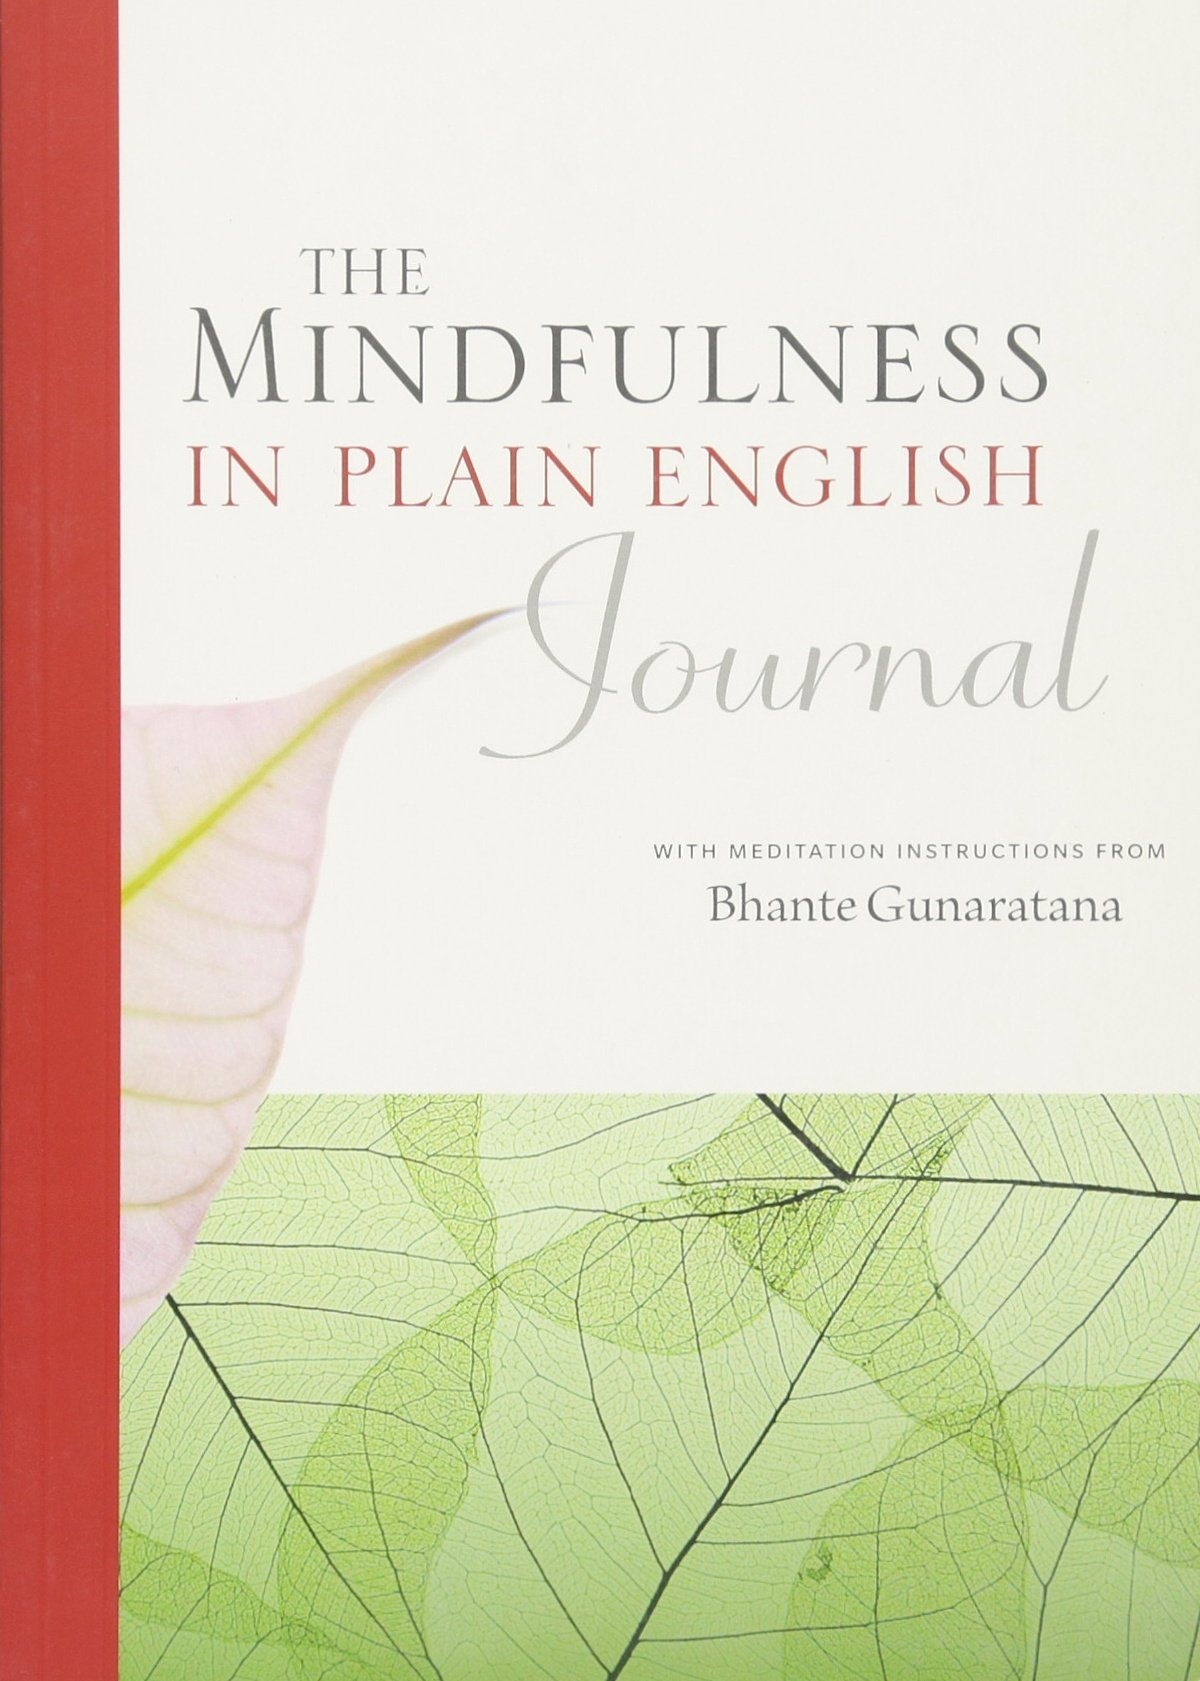 Download The Mindfulness in Plain English Journal ebook